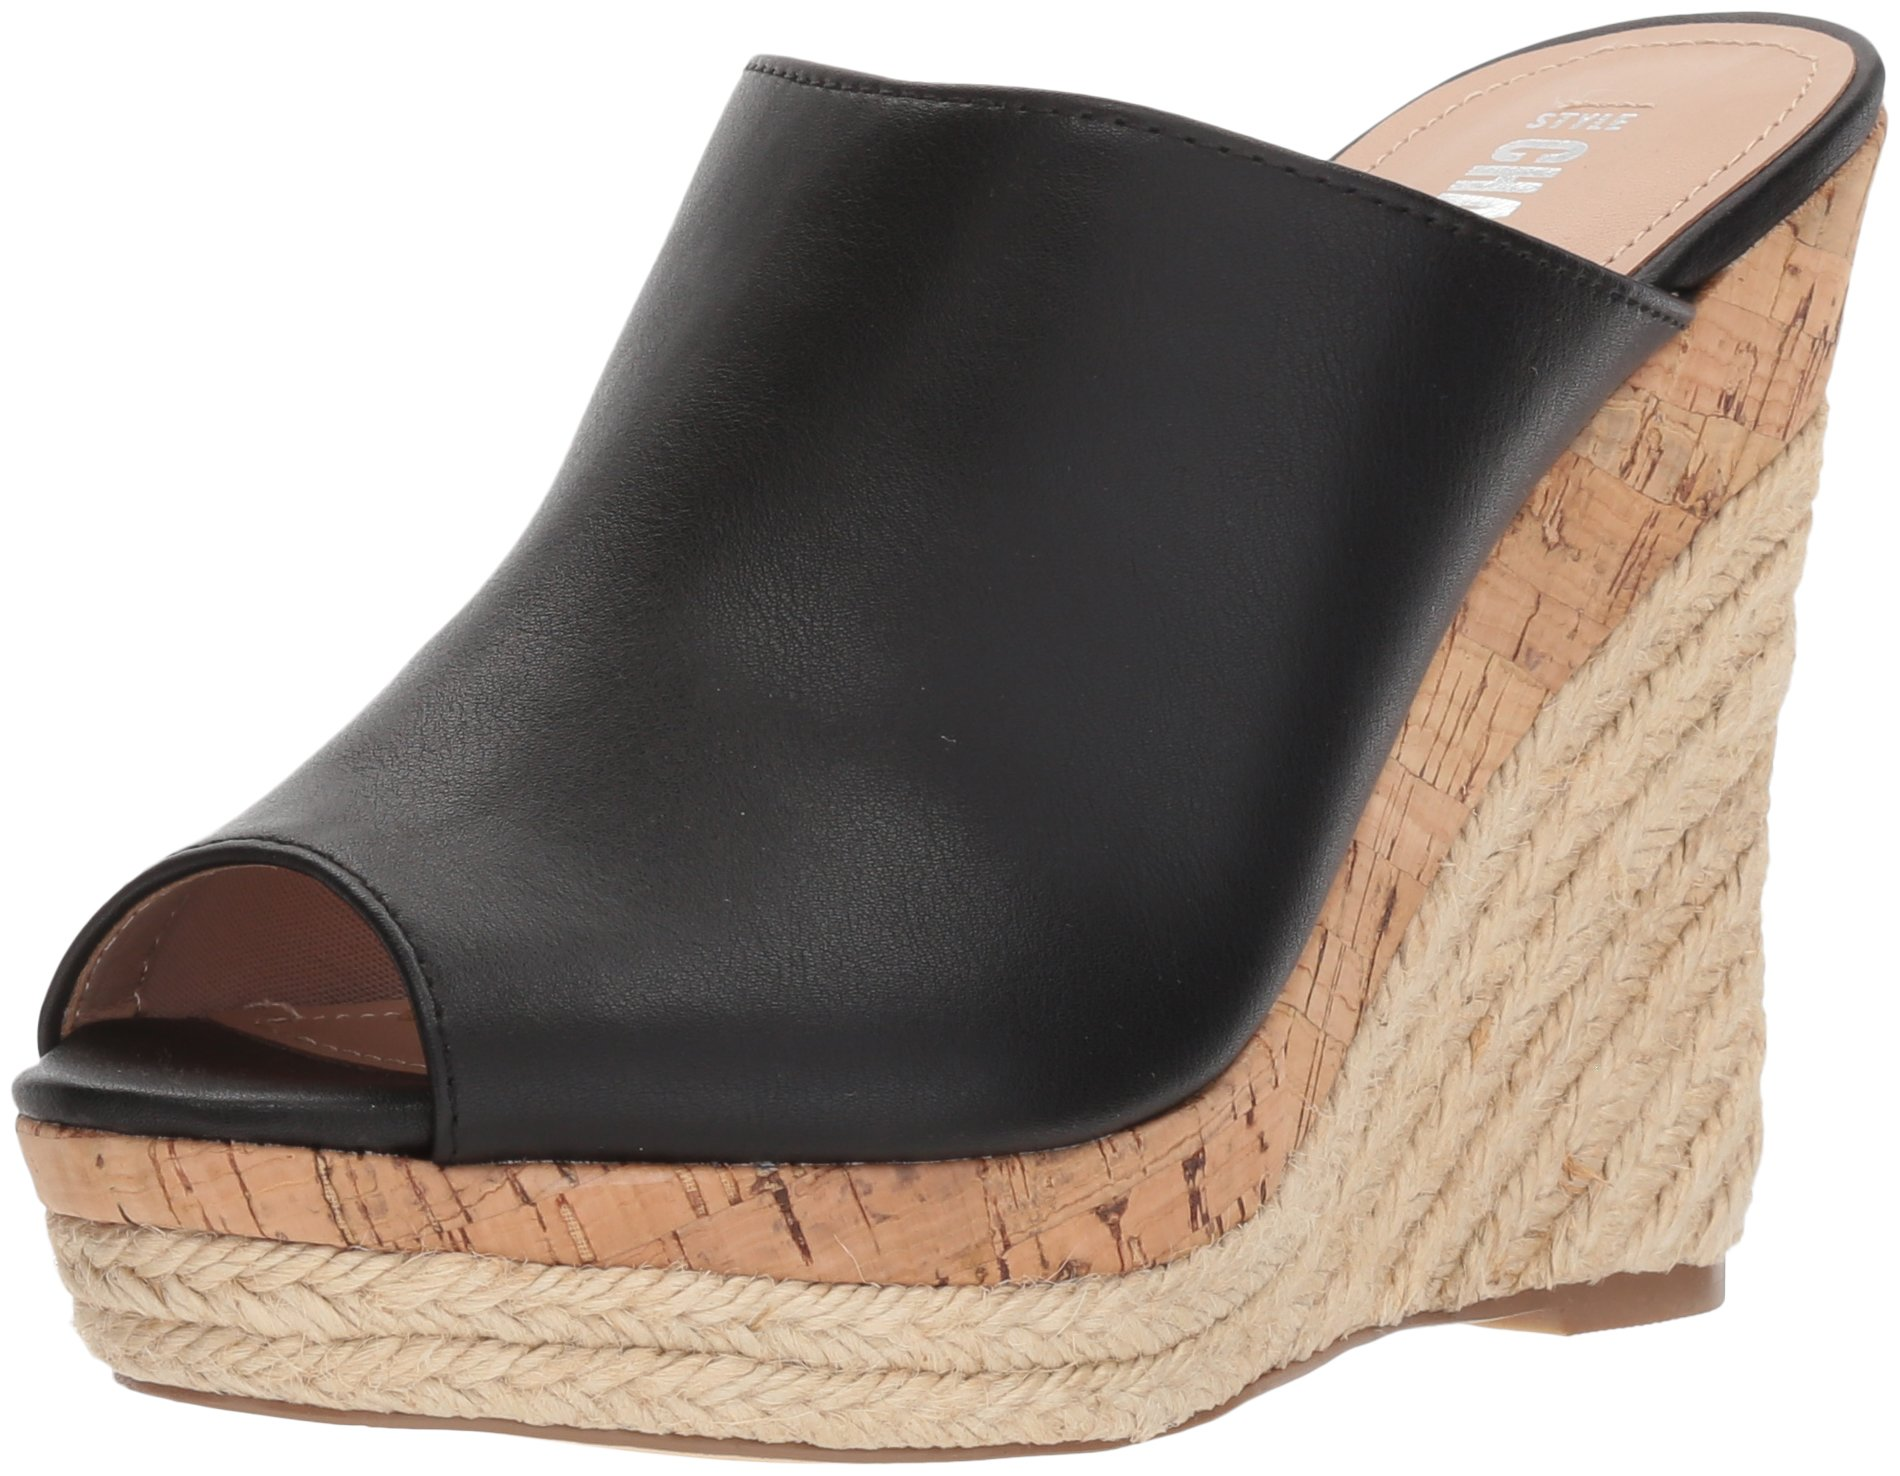 Style by Charles David Women's Angie Wedge Sandal, Black, 9.5 M US